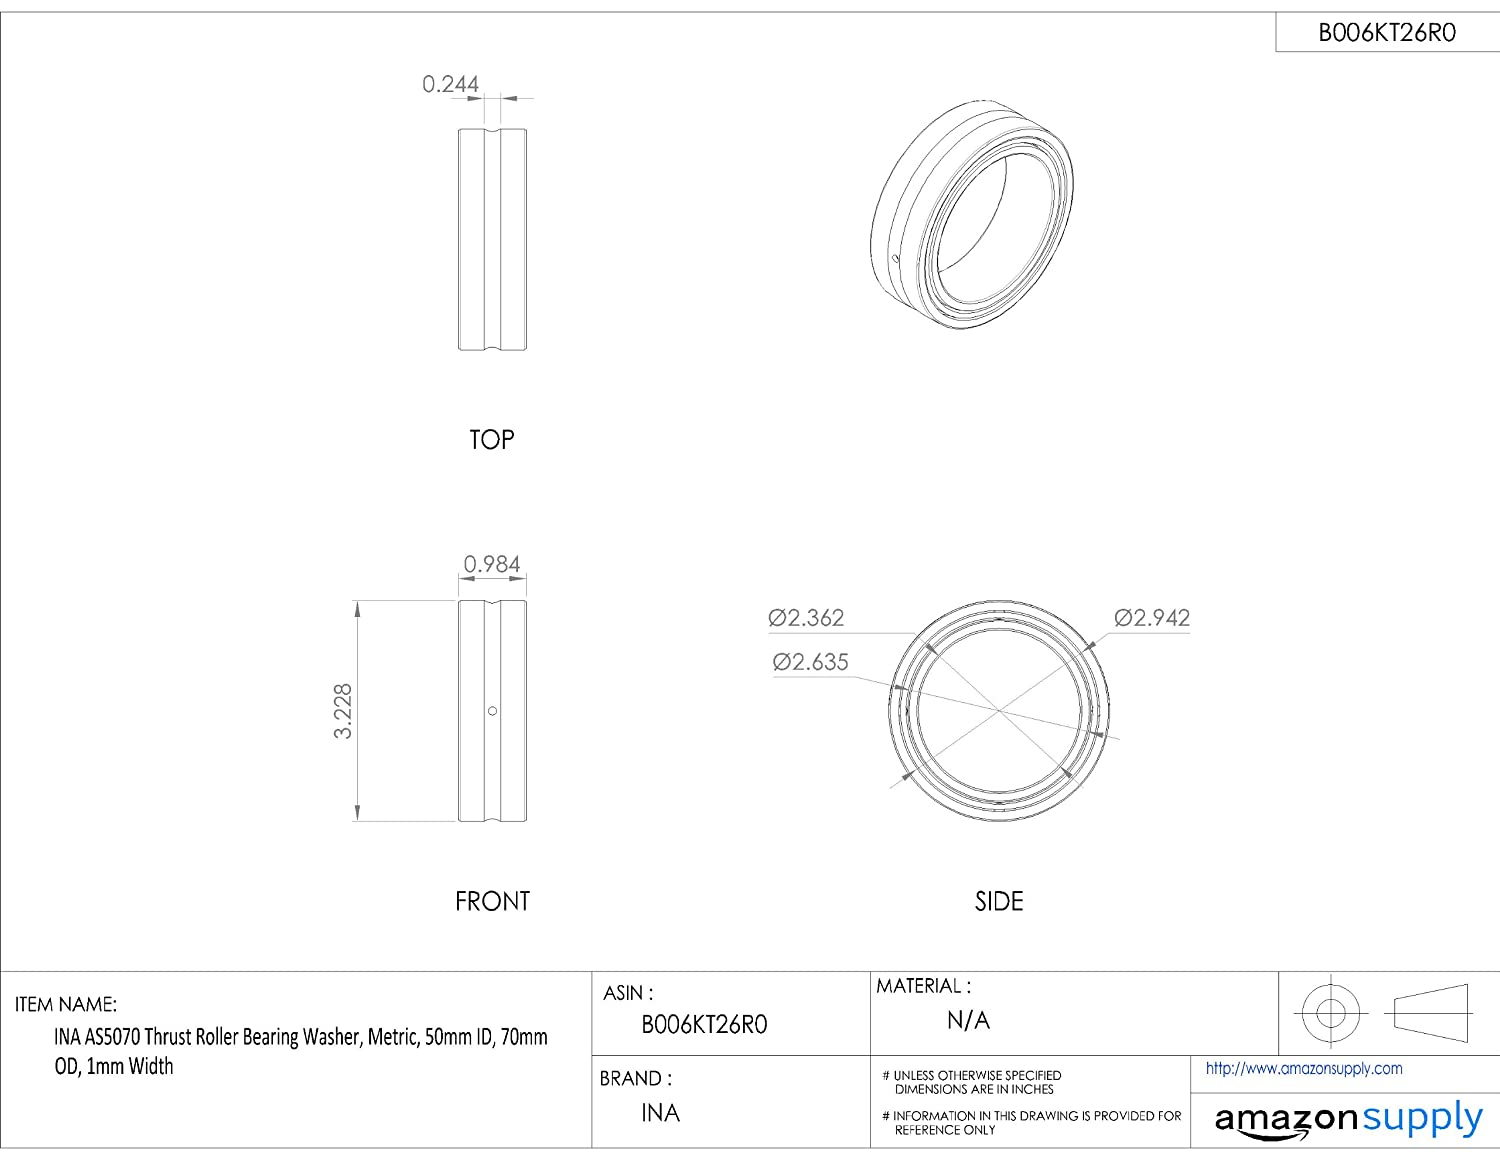 85mm OD 60mm ID 1mm Width INA AS6085 Thrust Roller Bearing Washer Metric